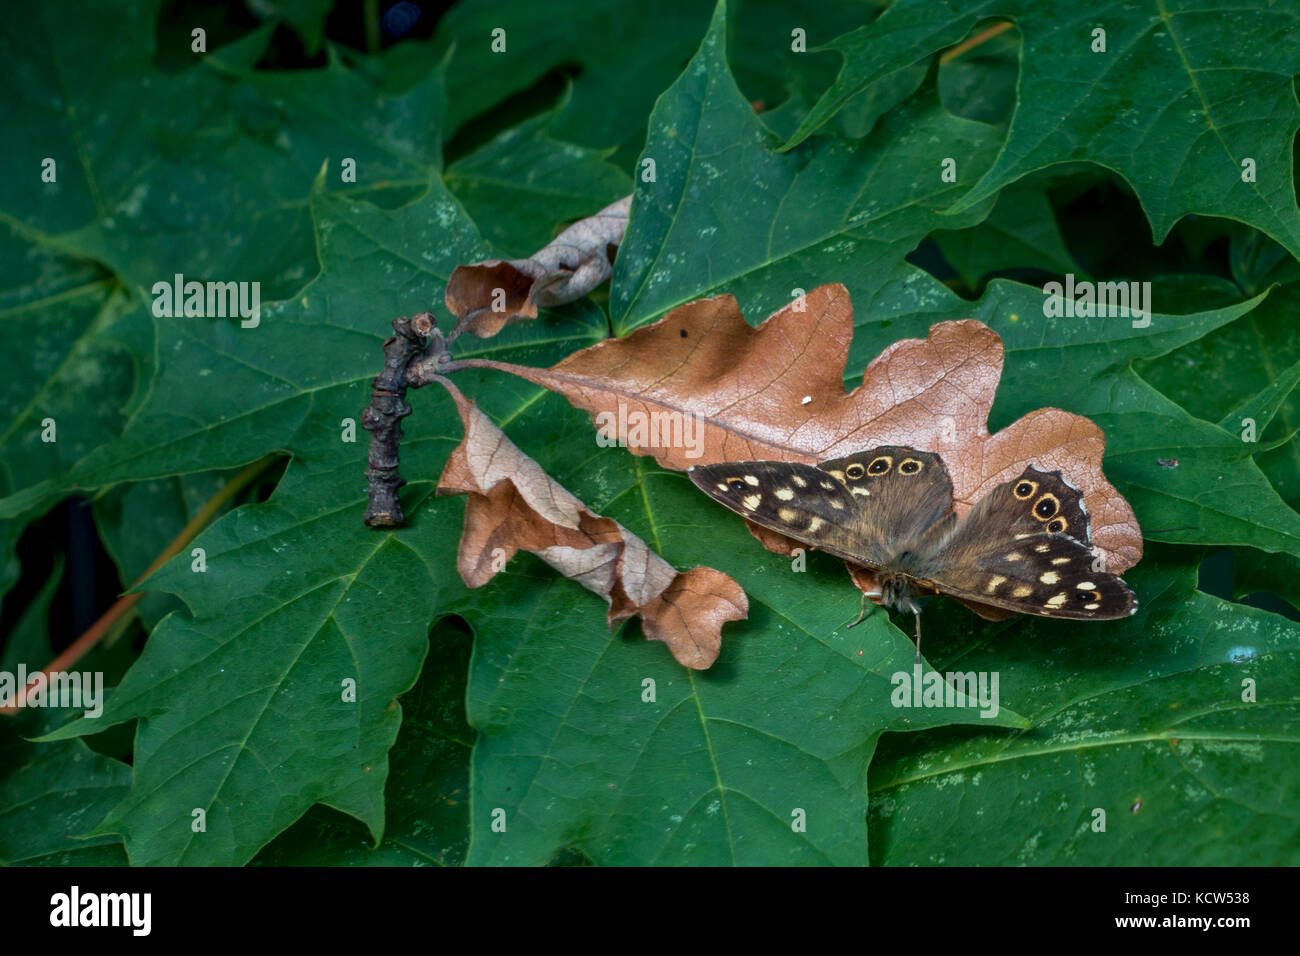 UK wildlife: Speckled wood butterfly resting on an autumn leaf in camouflage, mirroring the edge of the leaf Stock Photo